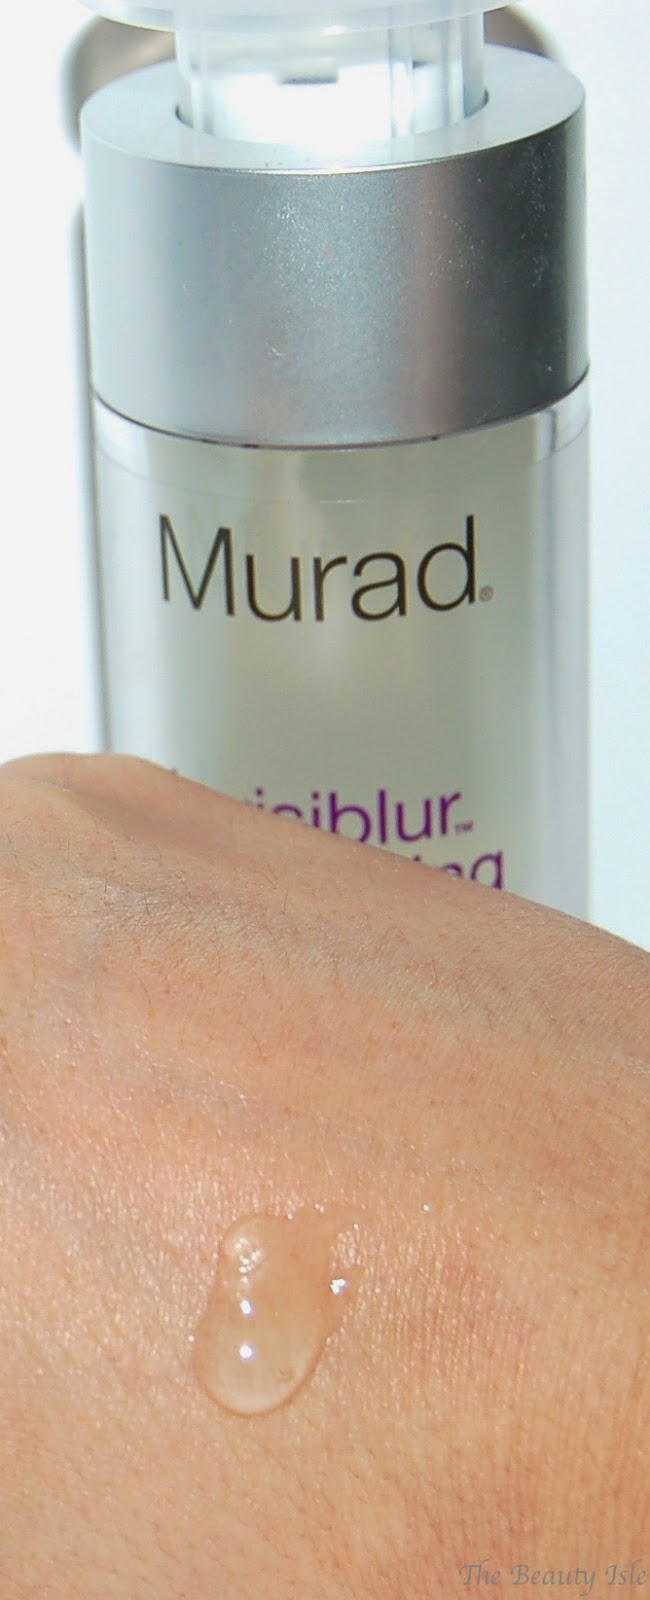 Murad Invisiblur Perfecting Shield Primer